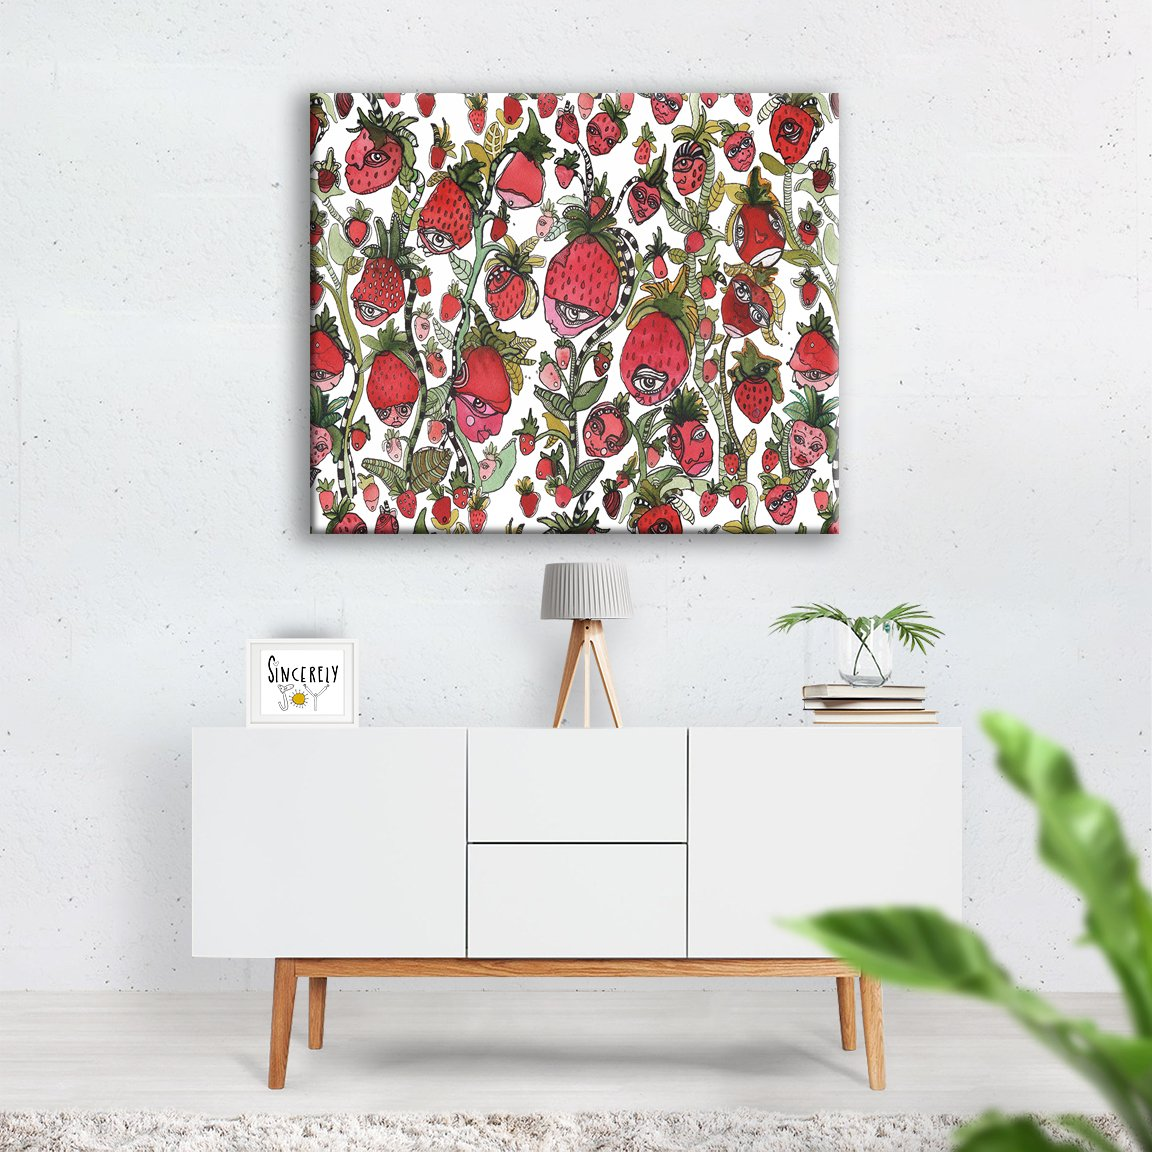 Strawberry Friends Abstract Wall Art Original Fruit Faces Painting